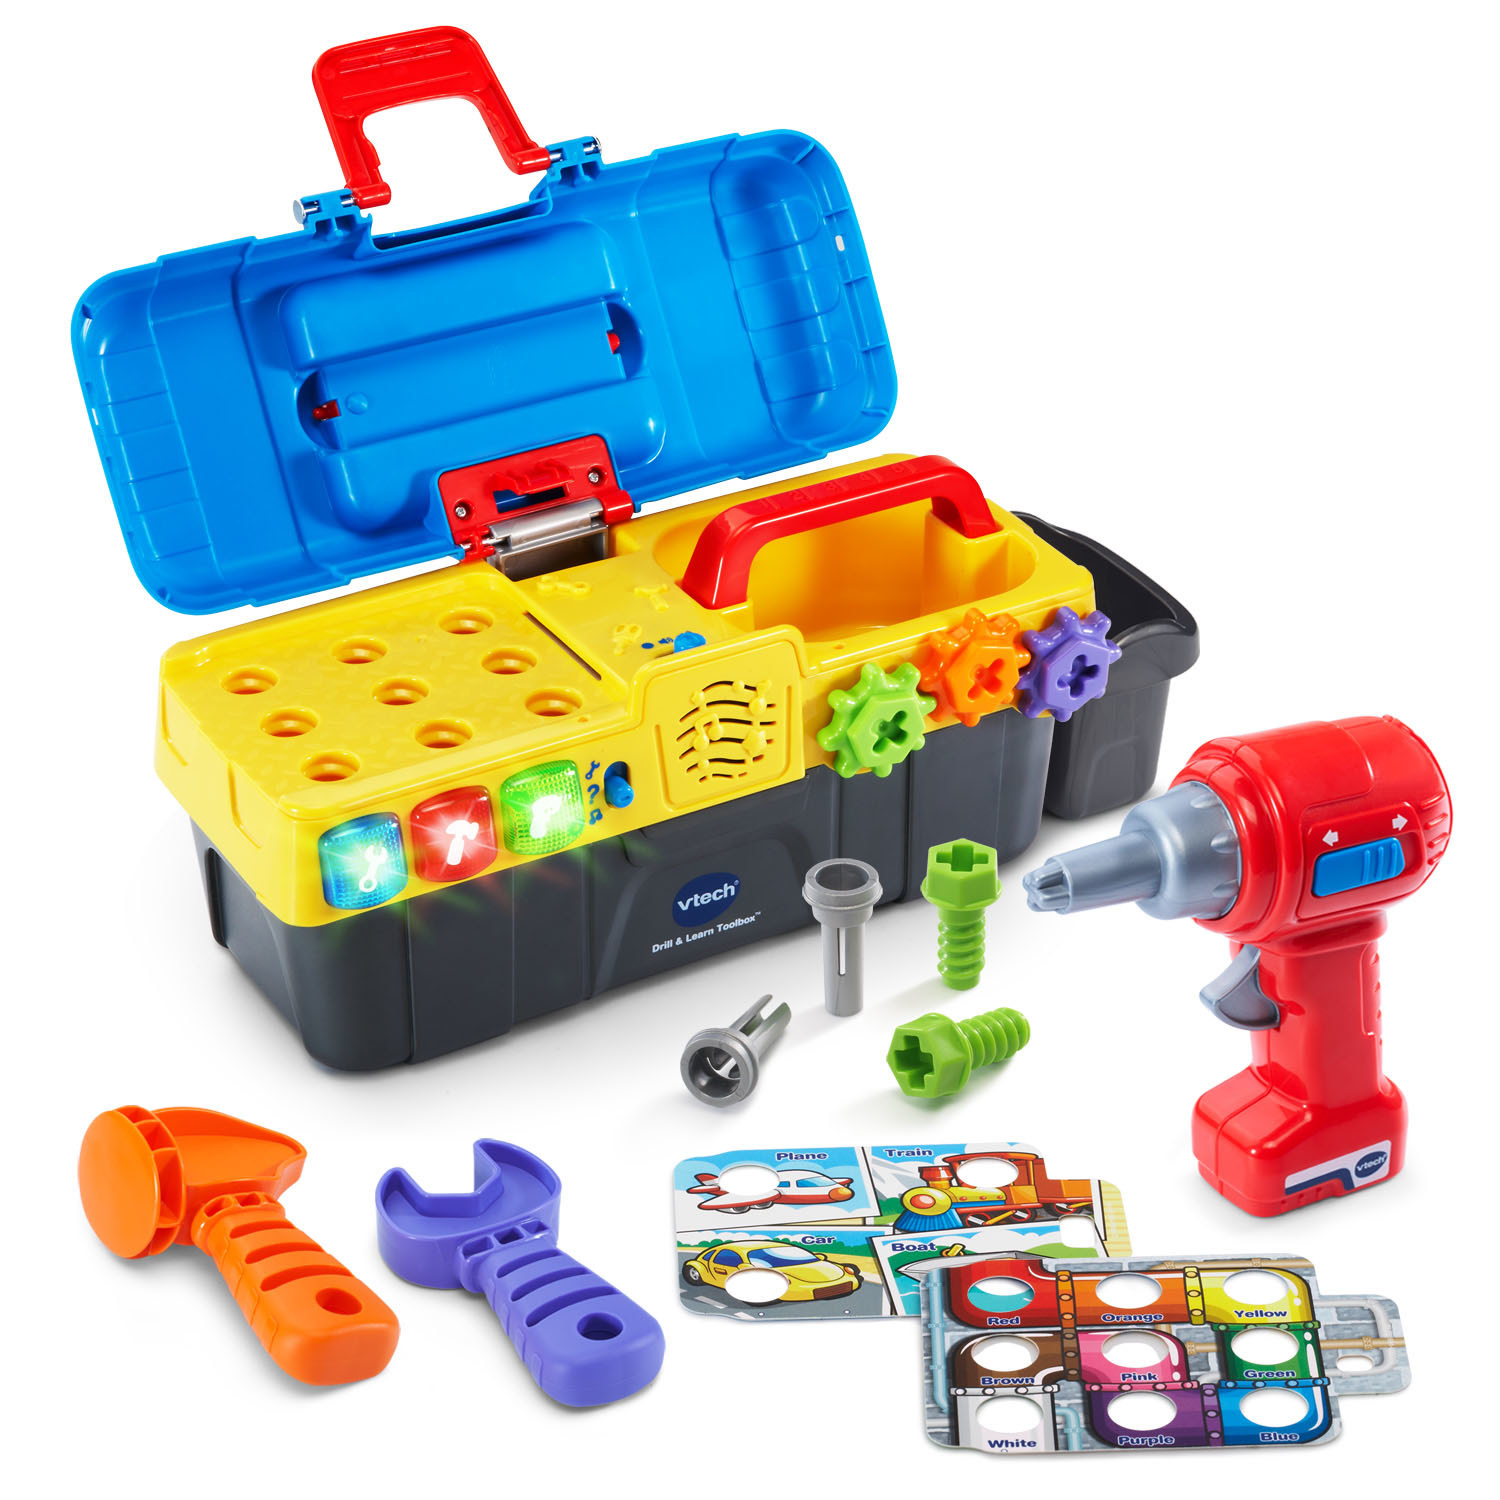 Colorful toolkit with handy play tools and interactive buttons